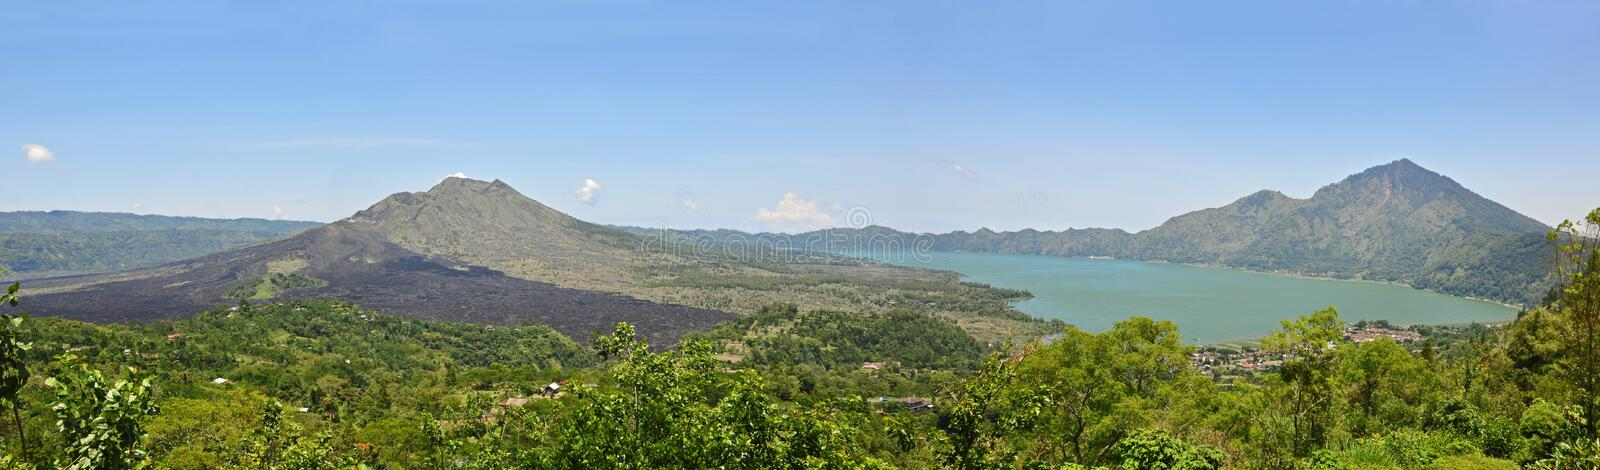 Panorama of a Volcano and lake Batur in Bali. Indonesia stock photography